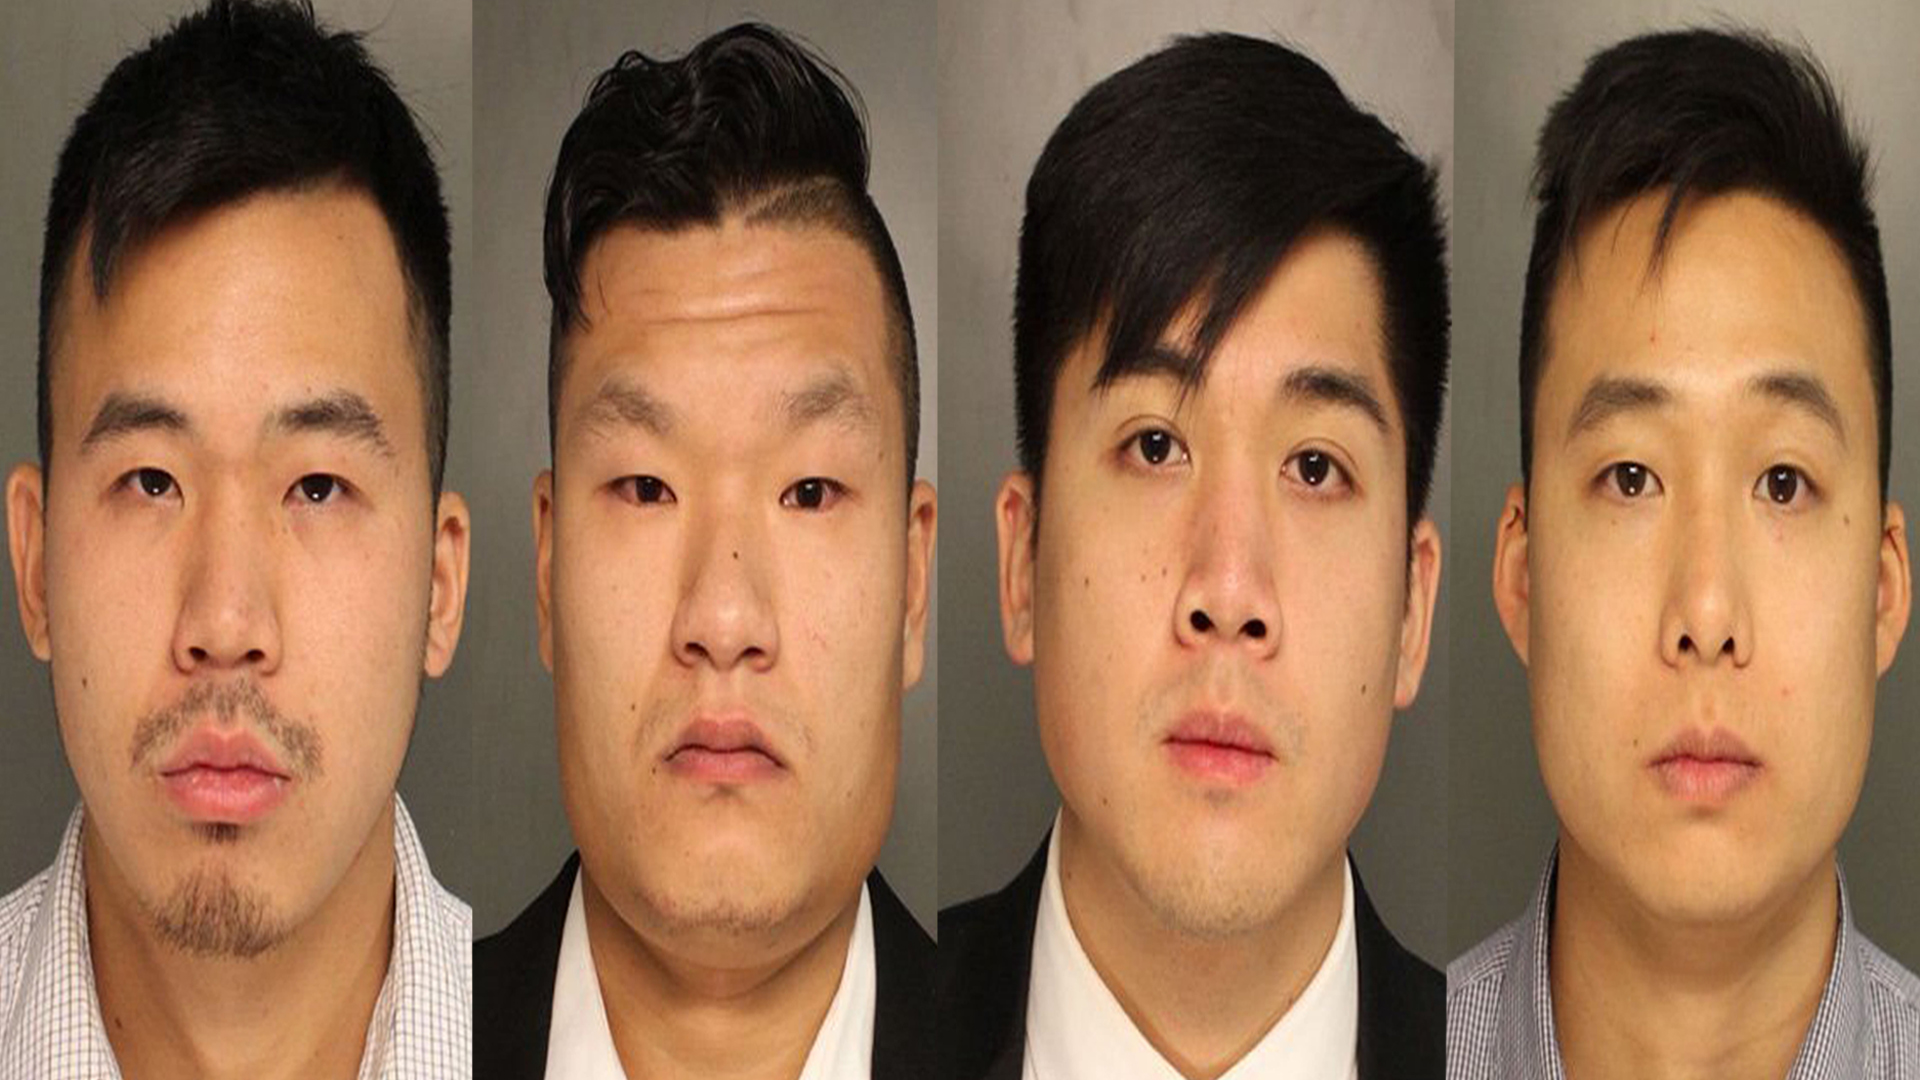 Kenny Kwan, Raymond Lam, Sheldon Wong and Charles Lai are seen in photos released by the Monroe County District Attorney's Office. (Credit: CNN)